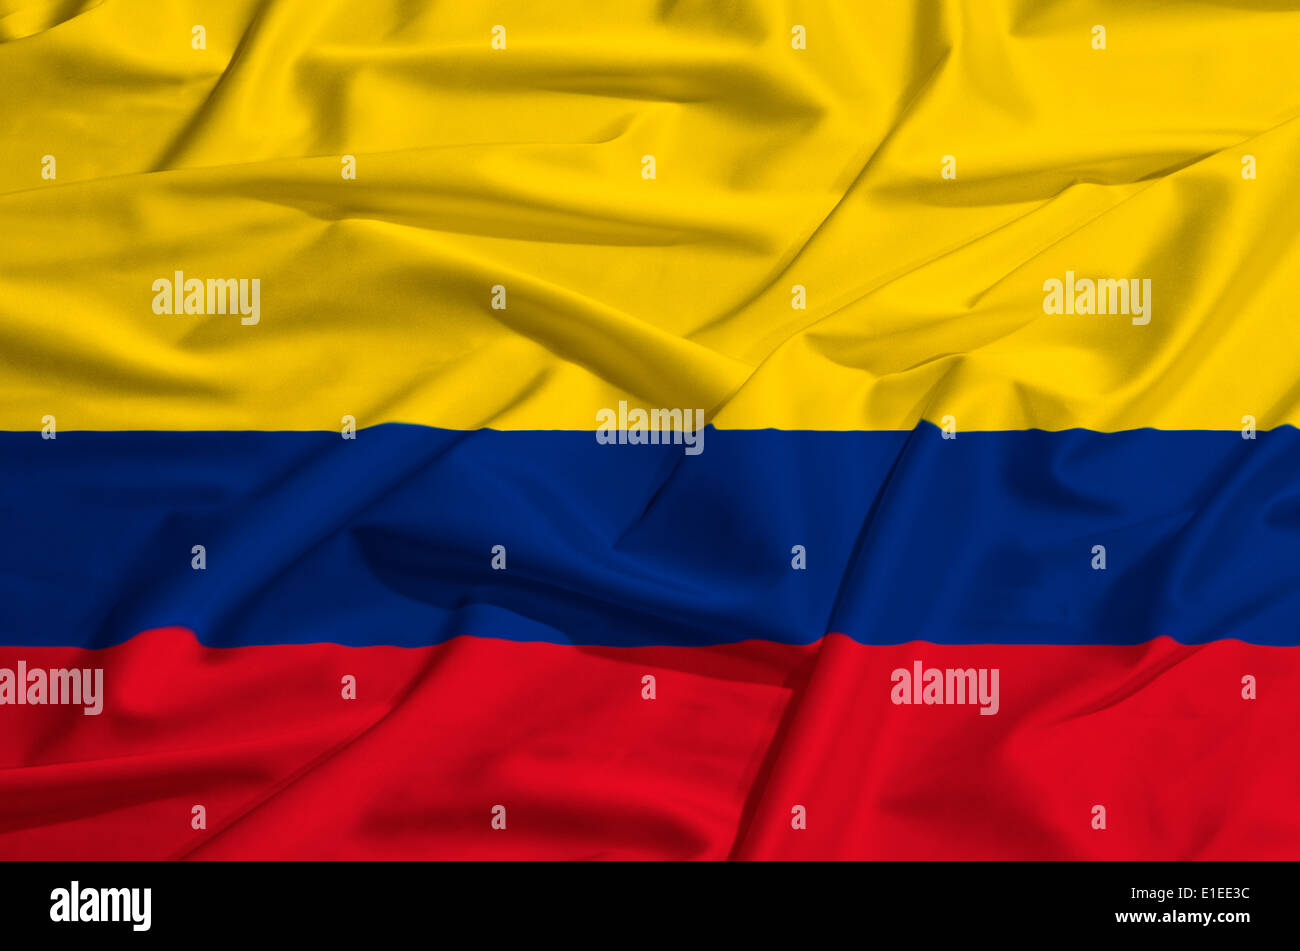 Colombia flag on a silk drape waving - Stock Image